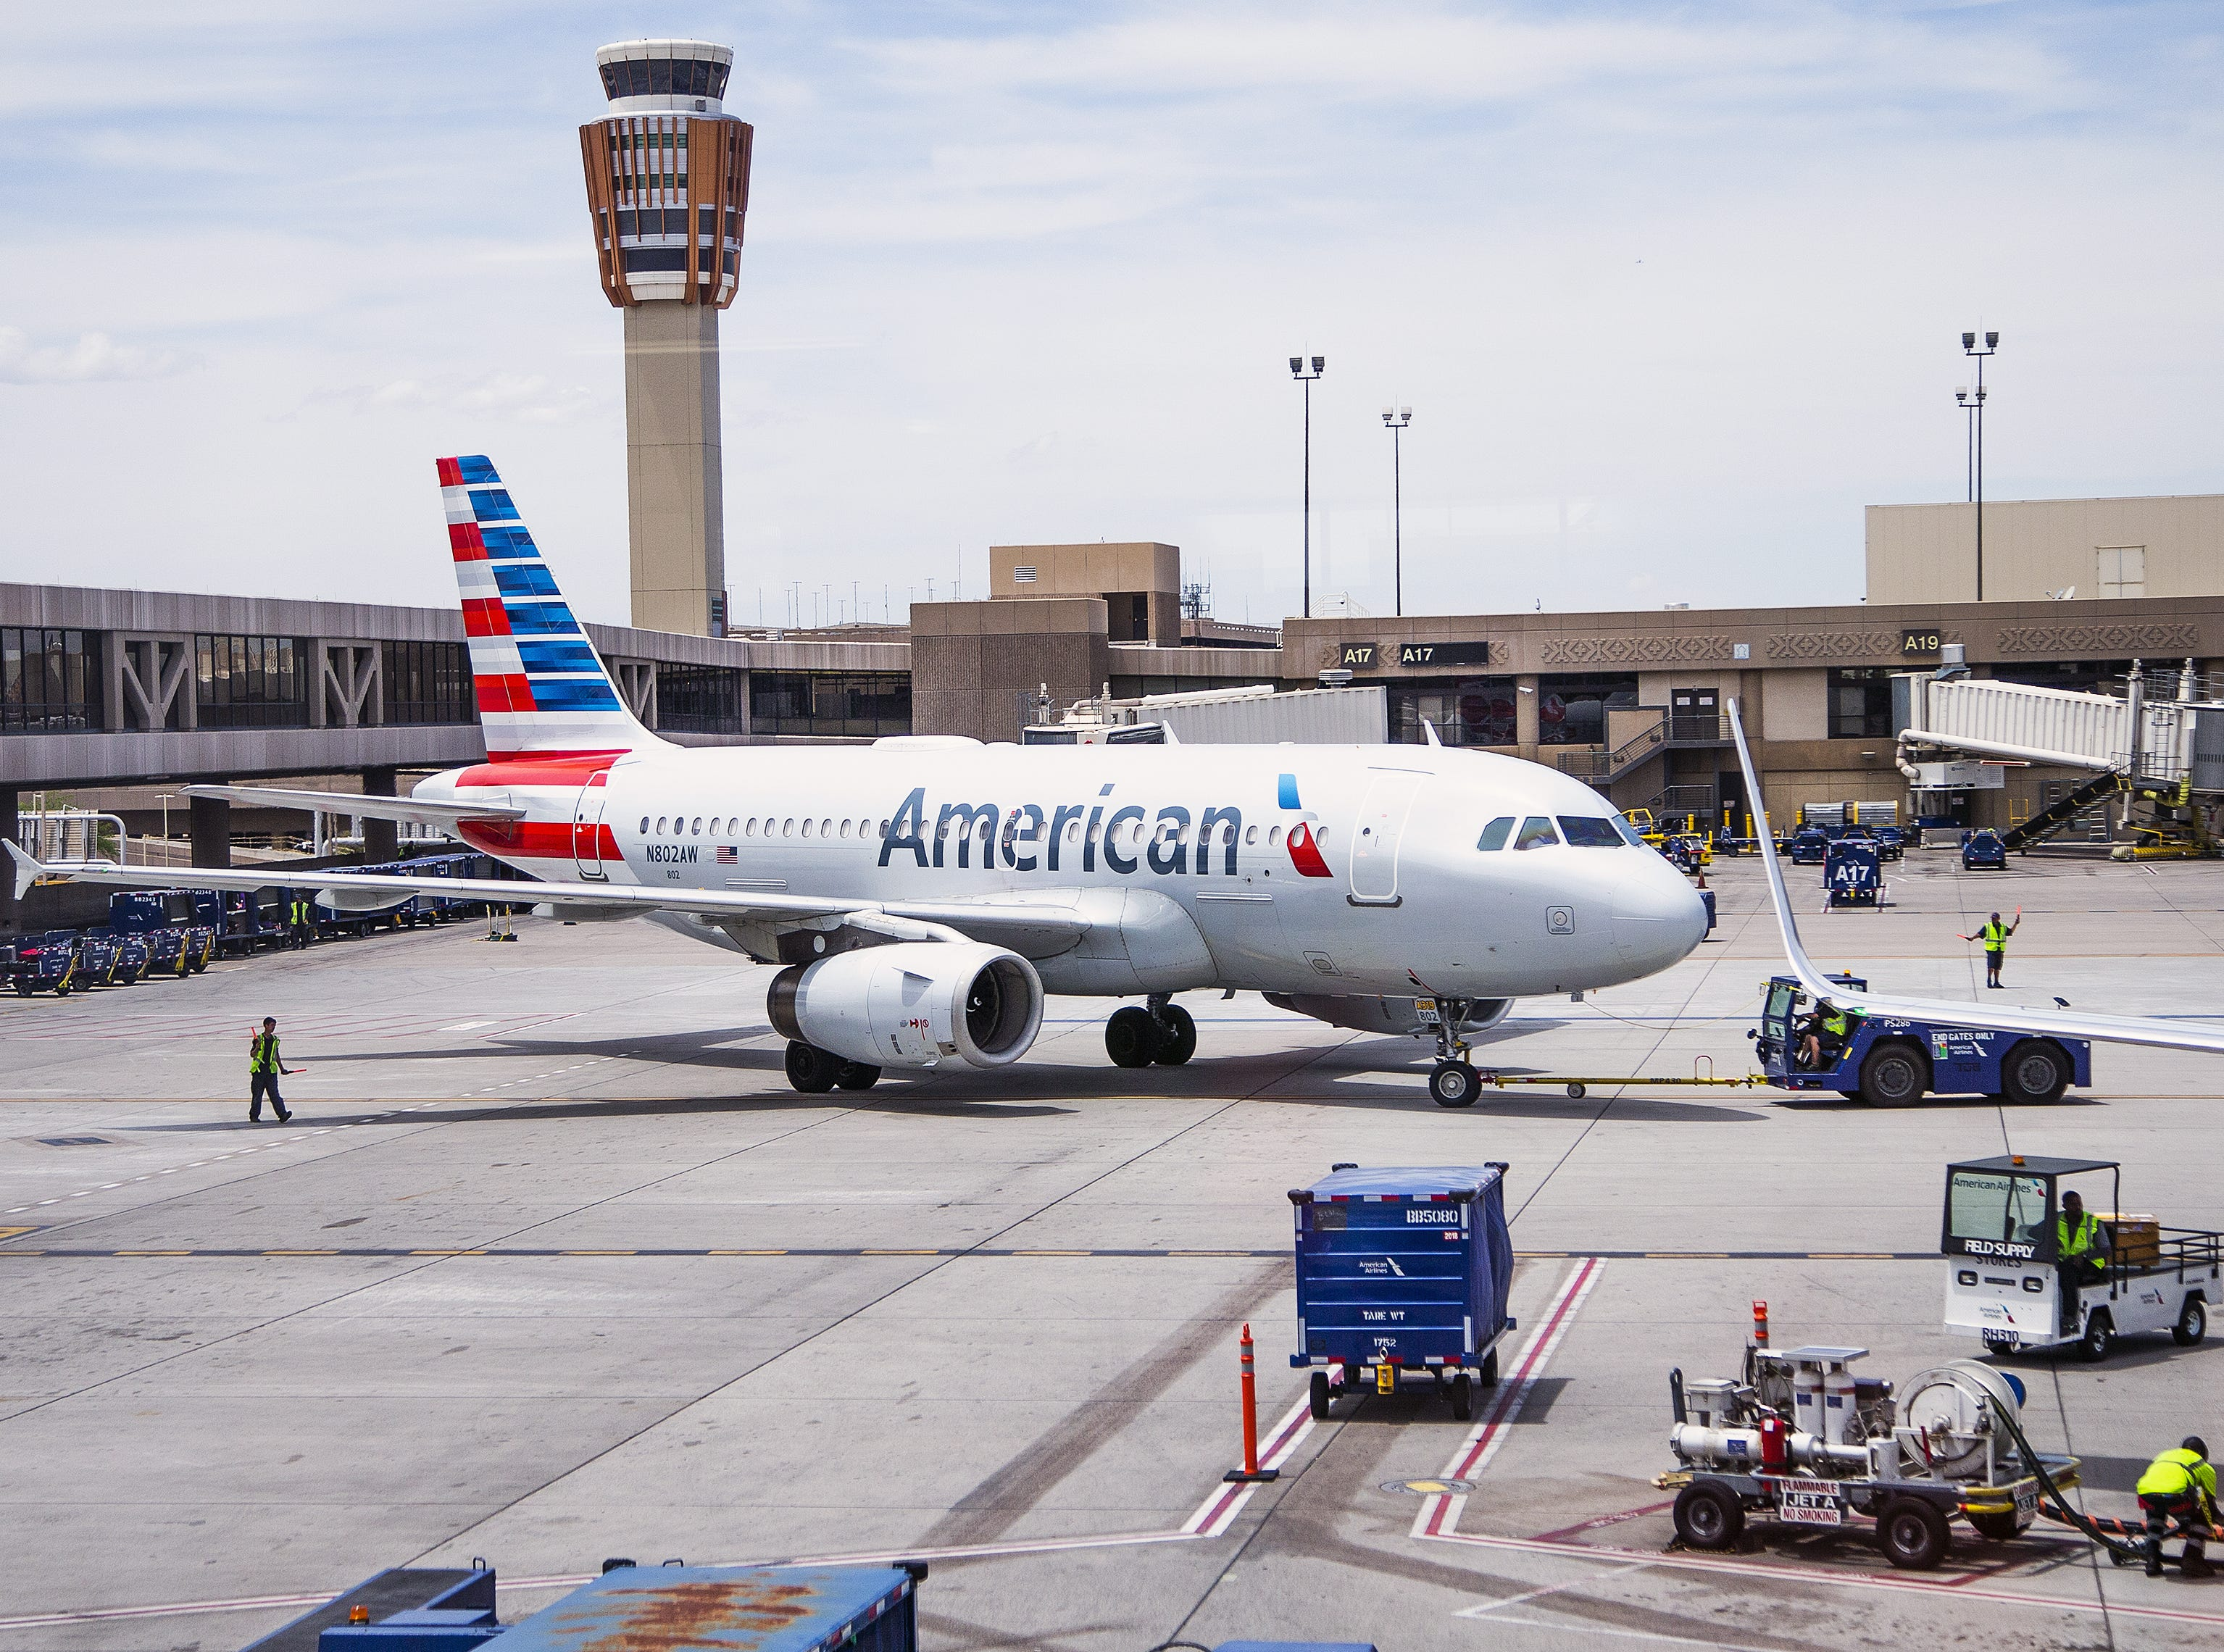 An American Airlines Airbus A-319 pulls away from the gate at Sky Harbor International Airport in Phoenix, Friday, May 10, 2019.  The flight , which arrived from Tucson, was unloaded, serviced, cleaned, reloaded and reboarded for a flight to Austin within 30 minutes.